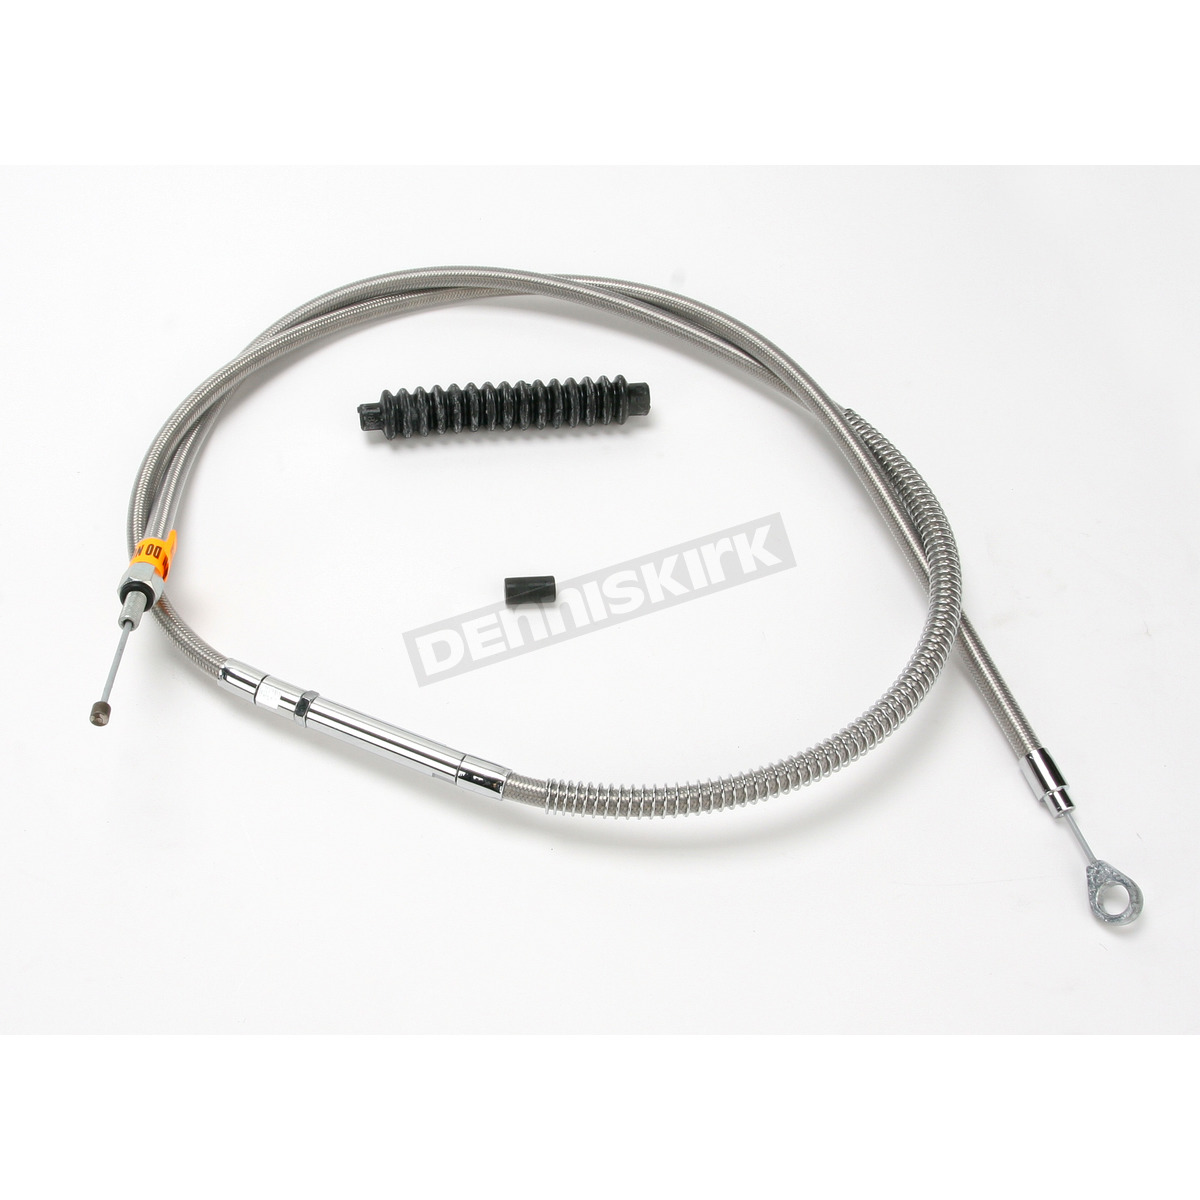 barnett high-efficiency stainless steel clutch cable - 102-30